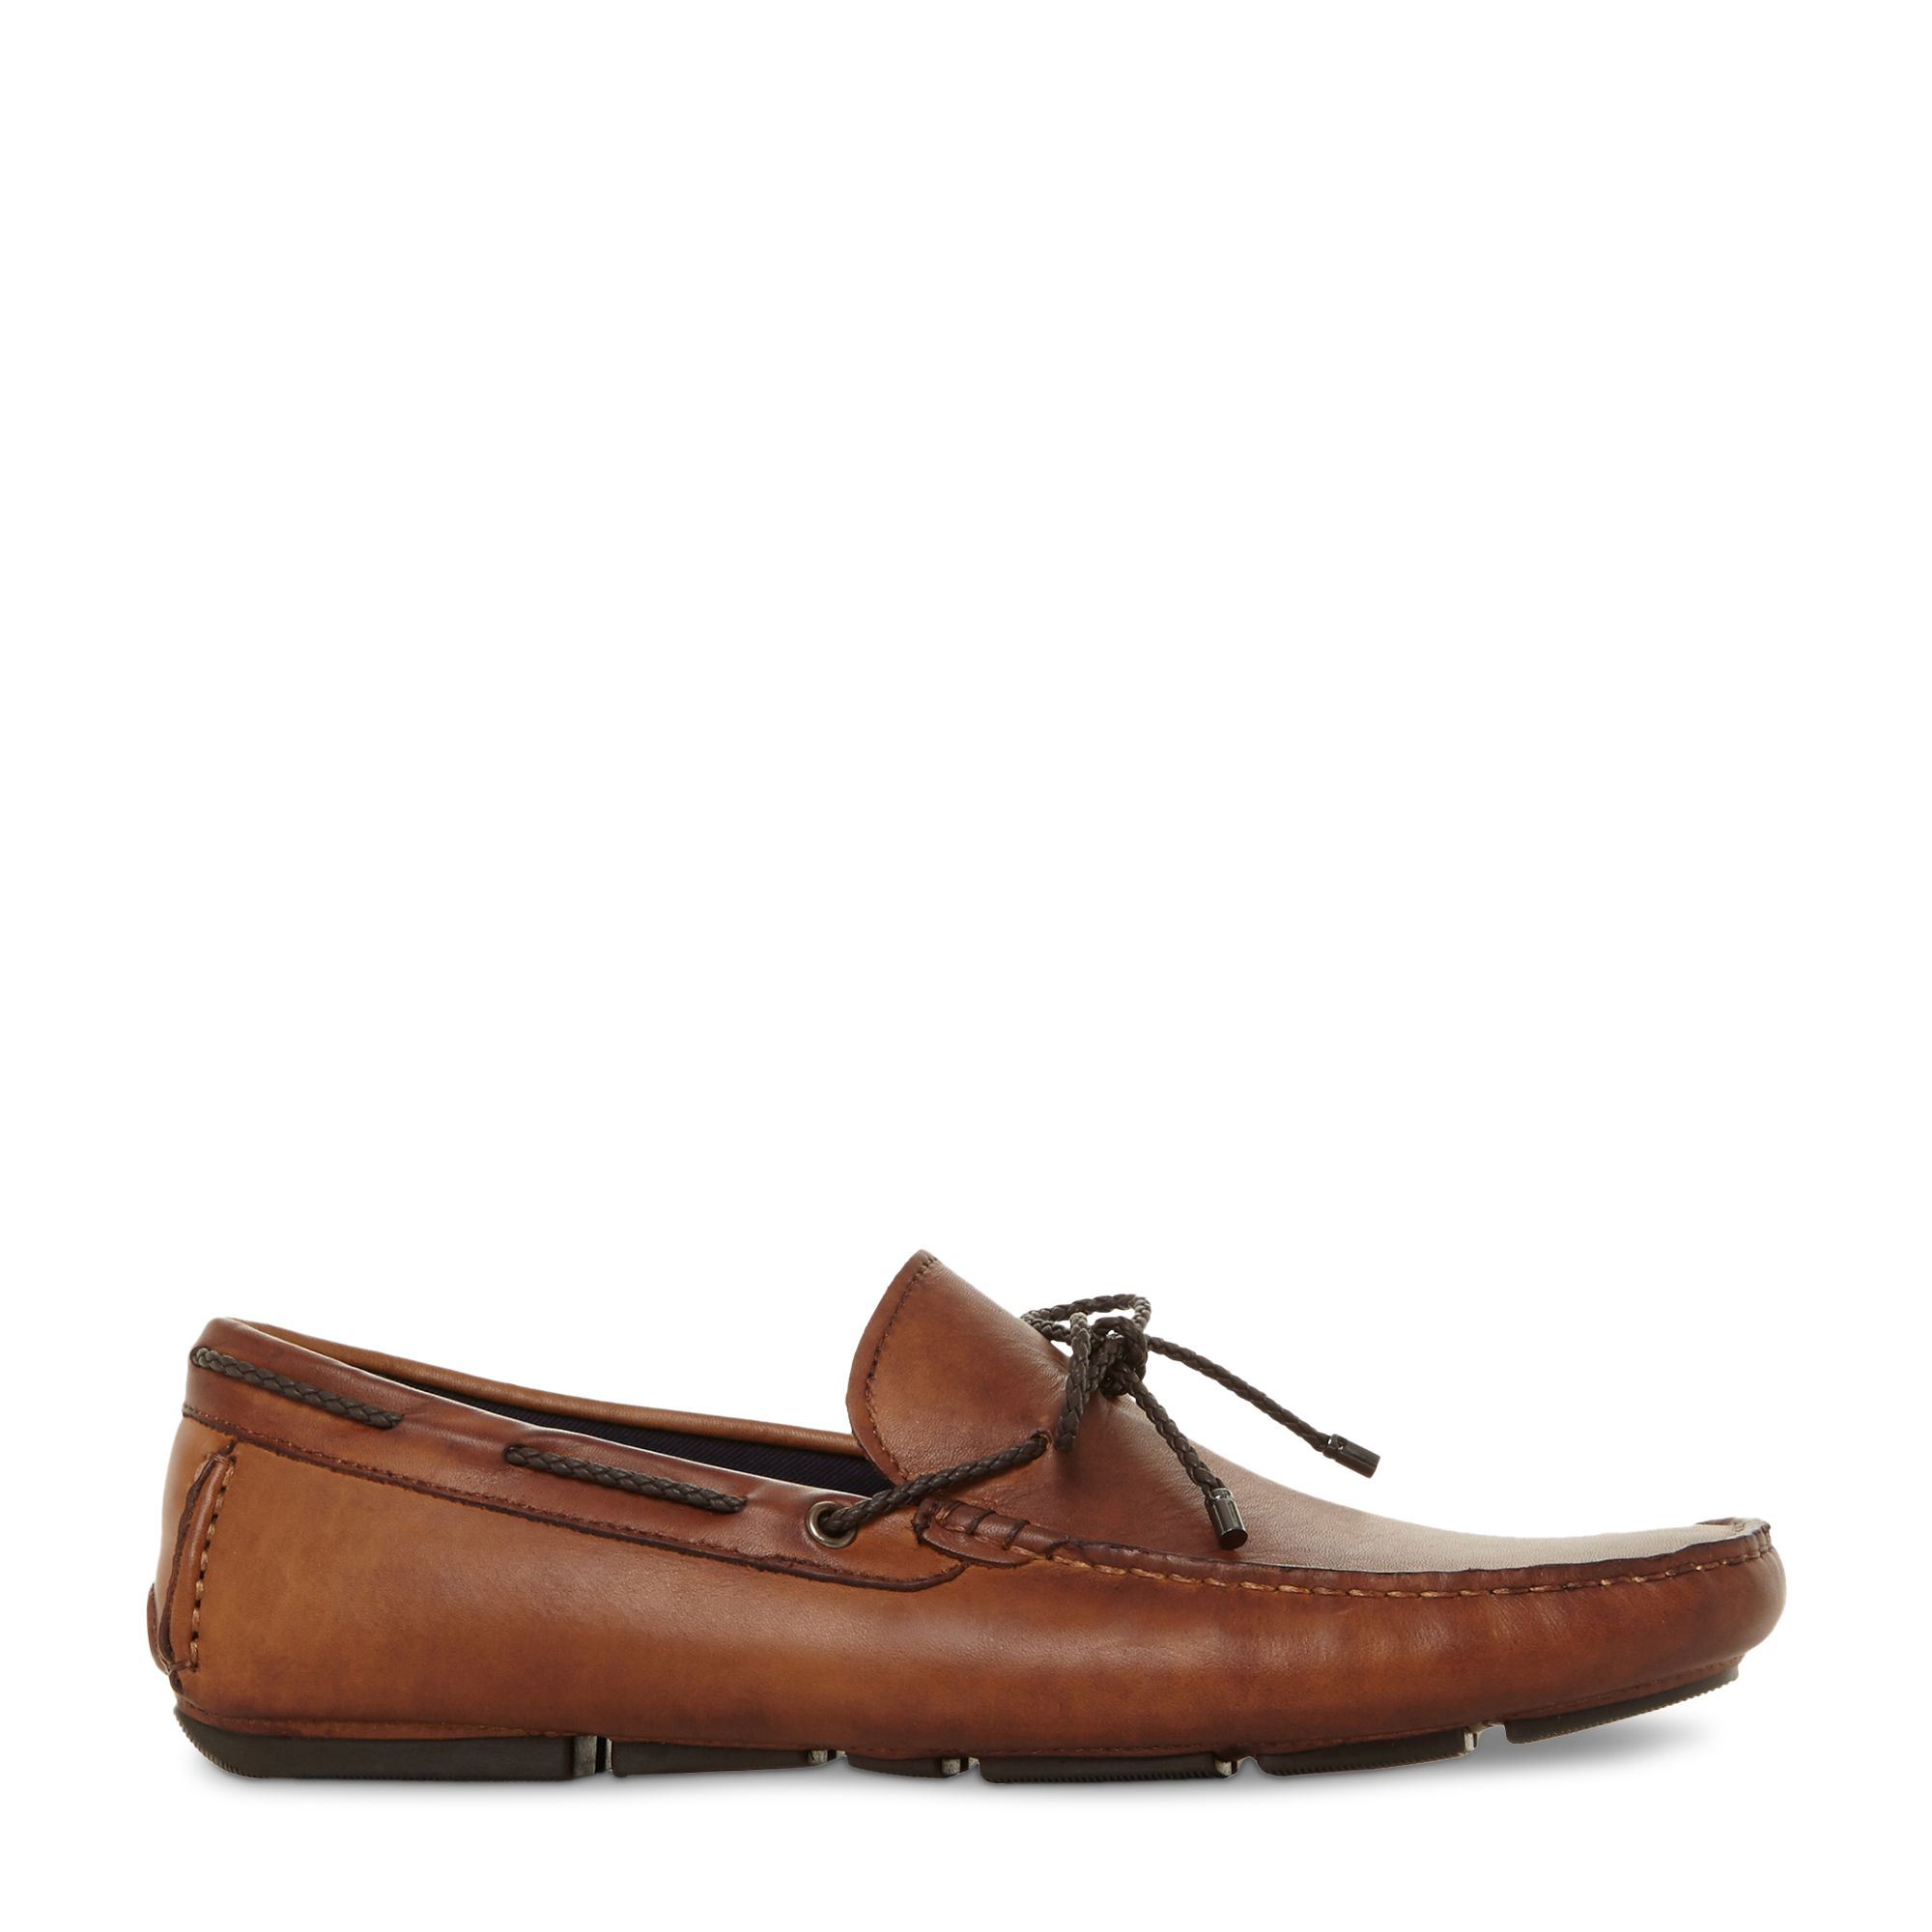 Dune Dune Brandstable Leather Driver Loafers, Tan